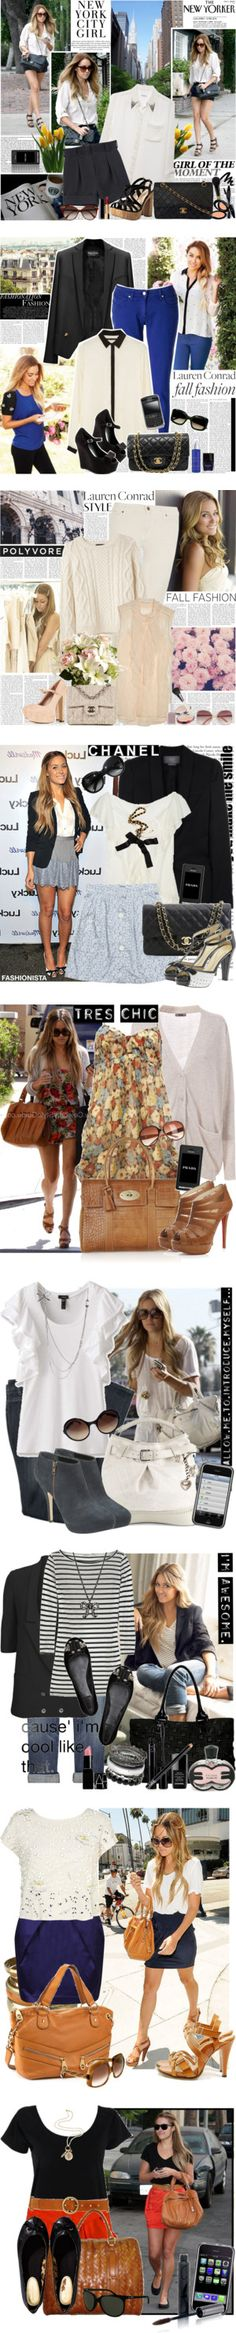 """""""Lauren Conrad style"""" by fashionqueengirl ❤ liked on Polyvore"""